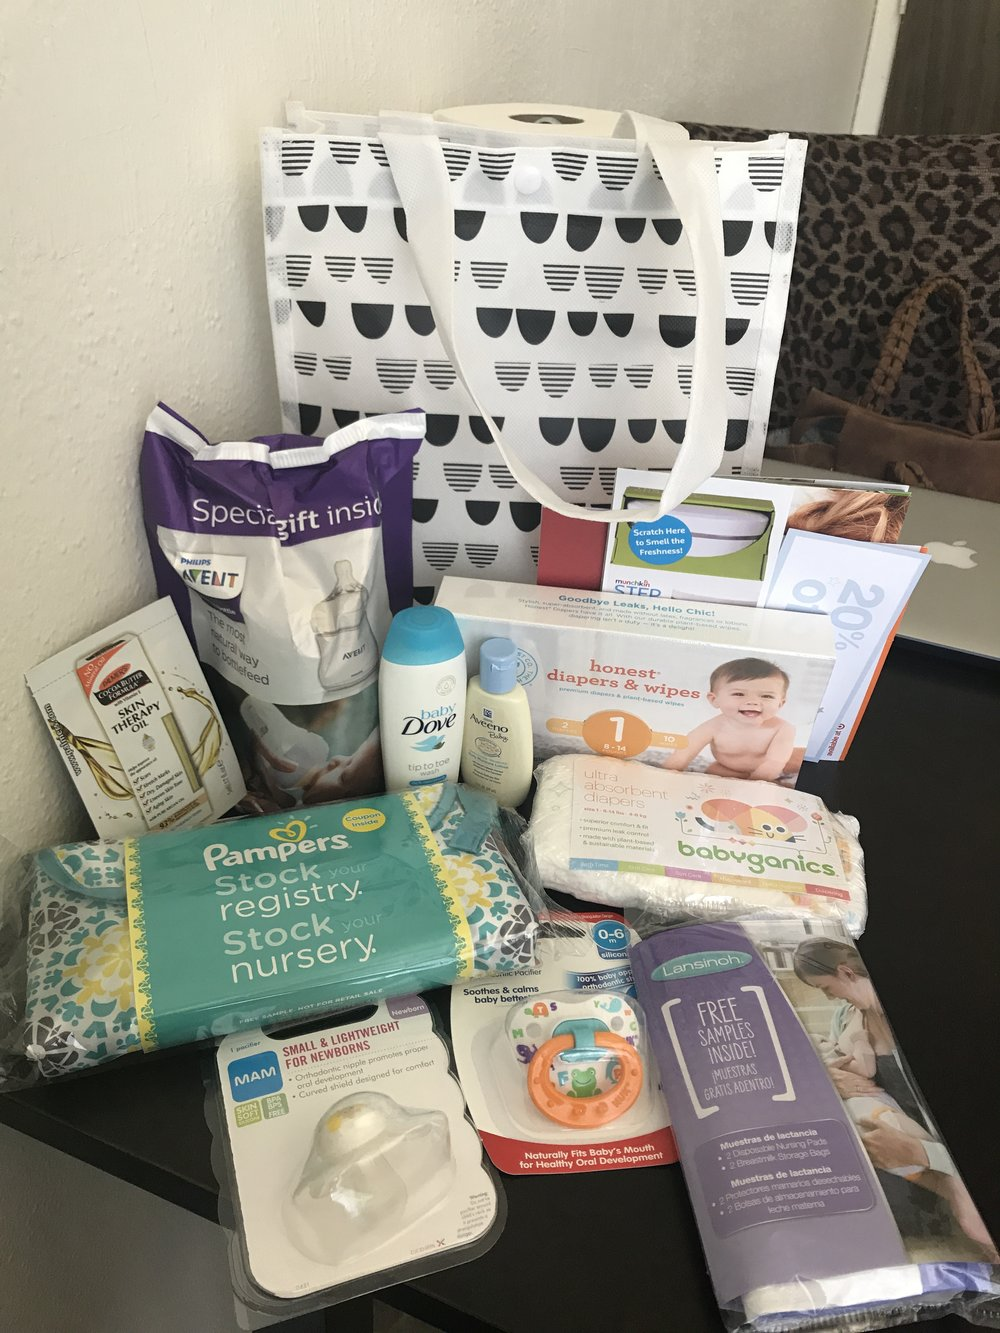 A few freebies and coupons I recieved from TARGET when I created my registry!